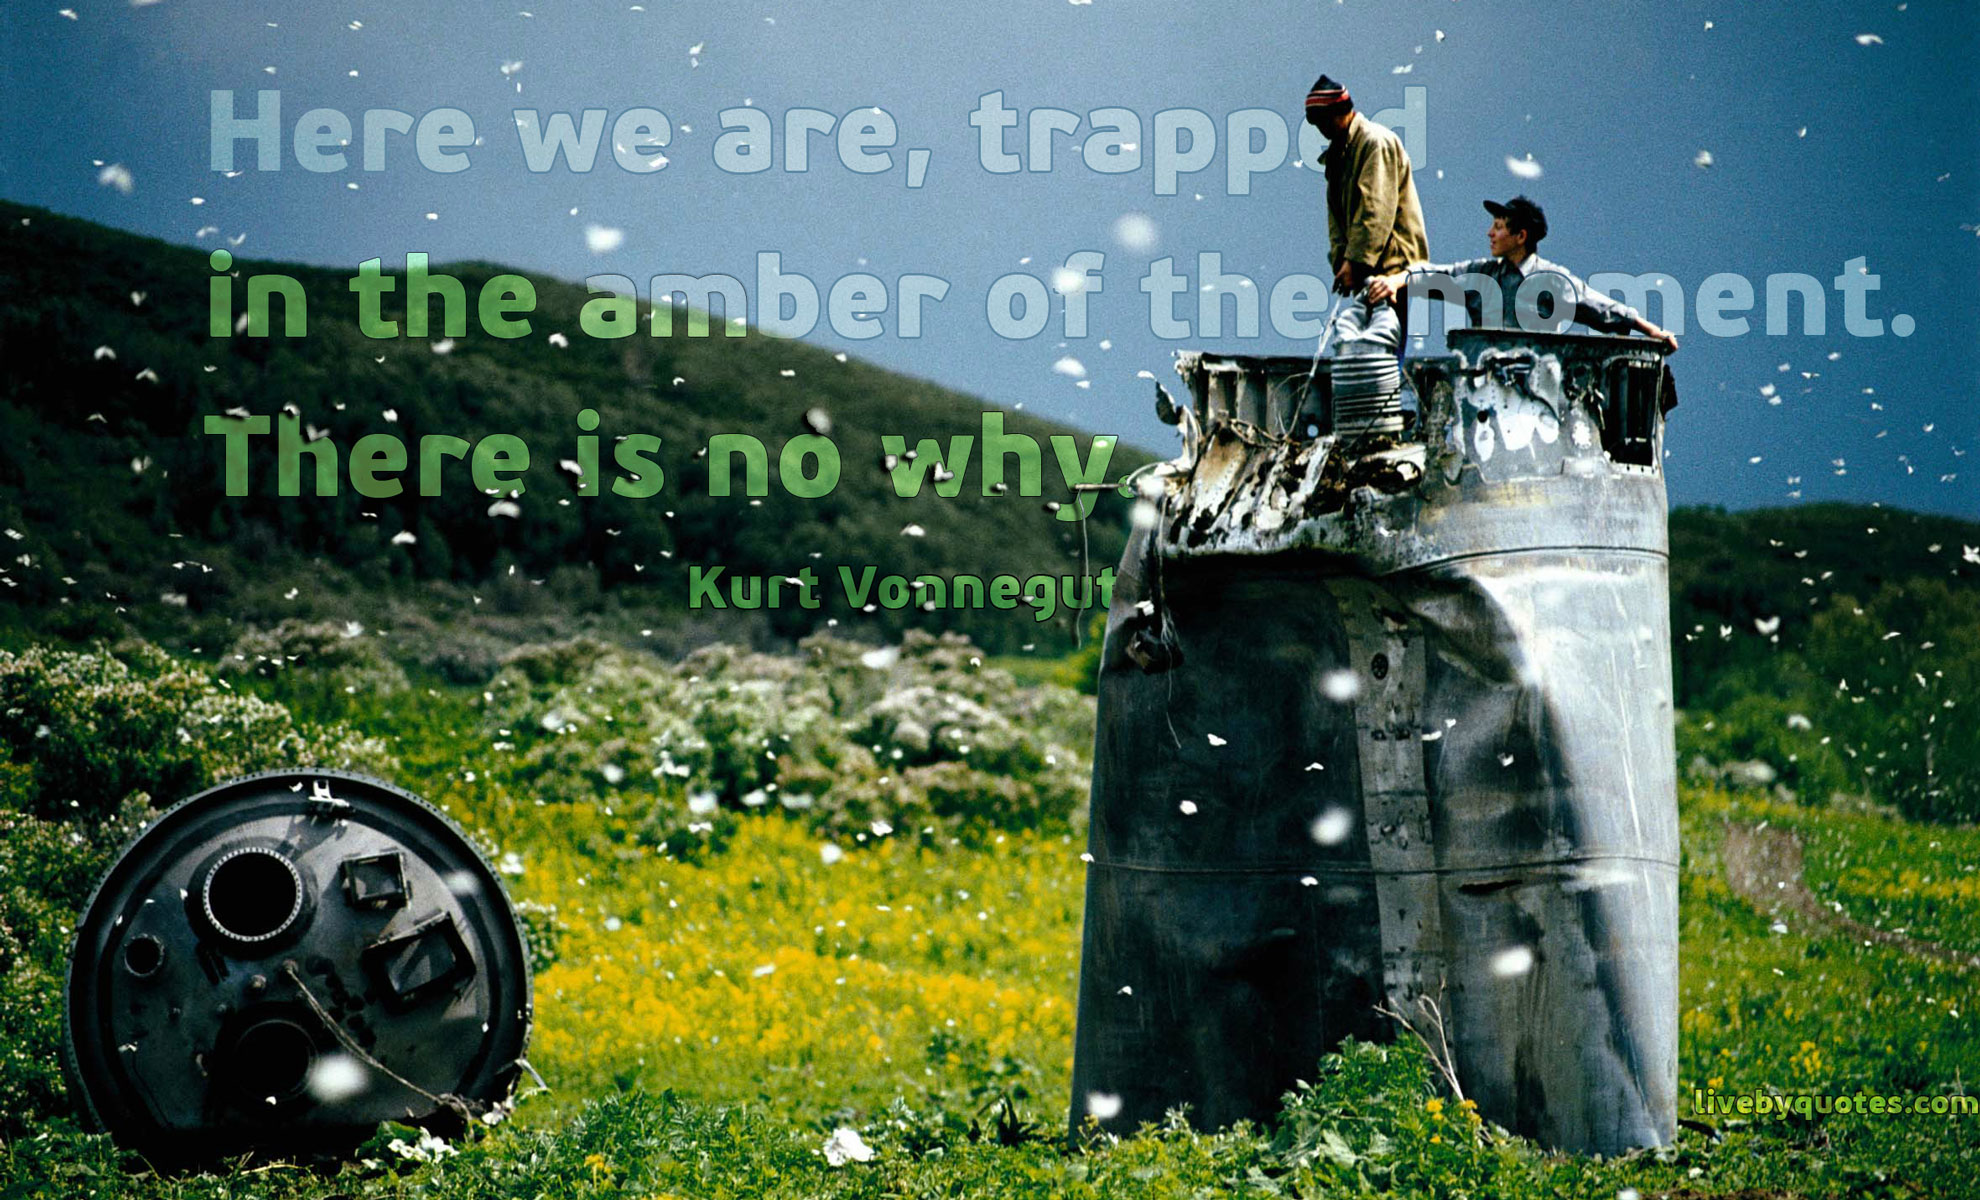 Kurt Vonnegut quotation